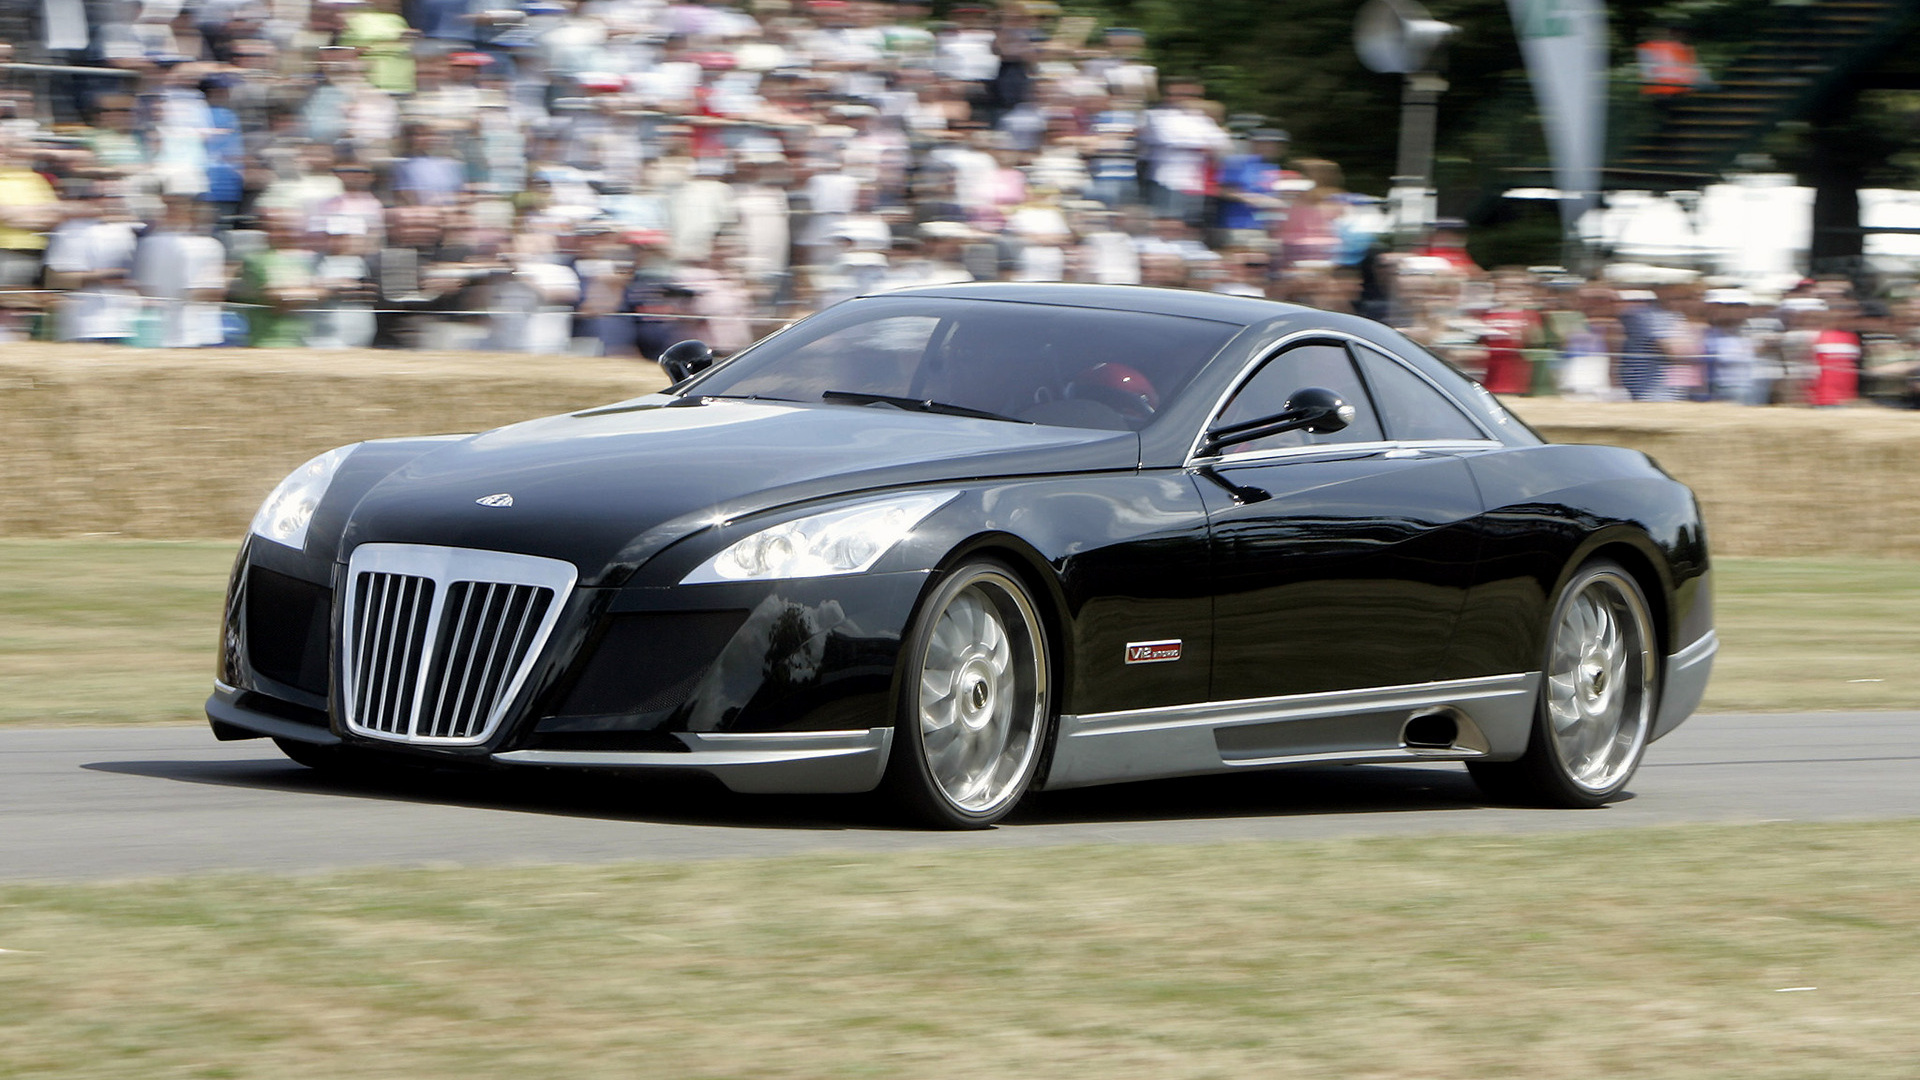 2005 Maybach Exelero Concept   Wallpapers and HD Images Car Pixel 1920x1080